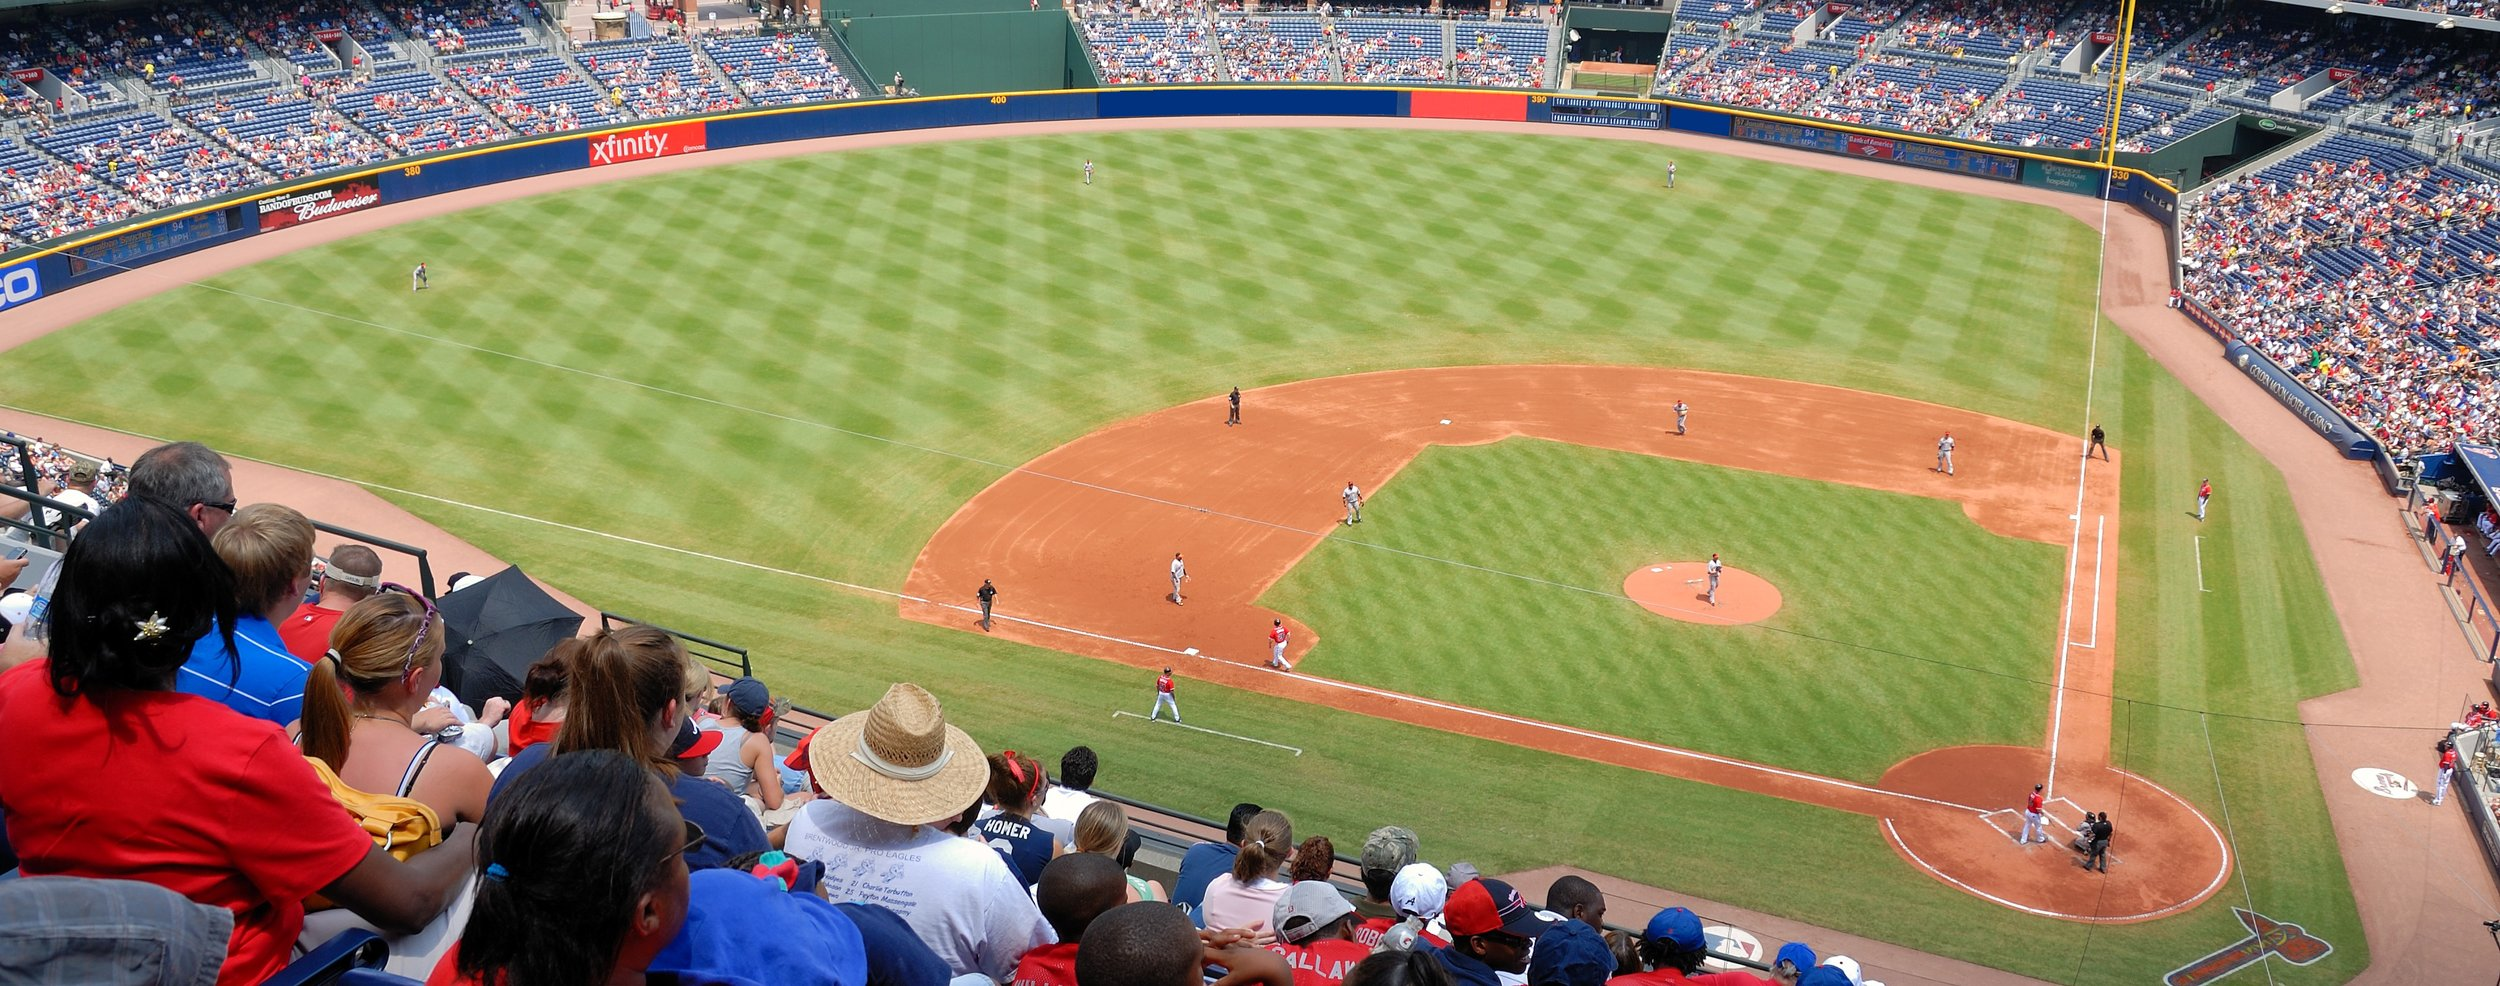 panoramic-view-baseball-field